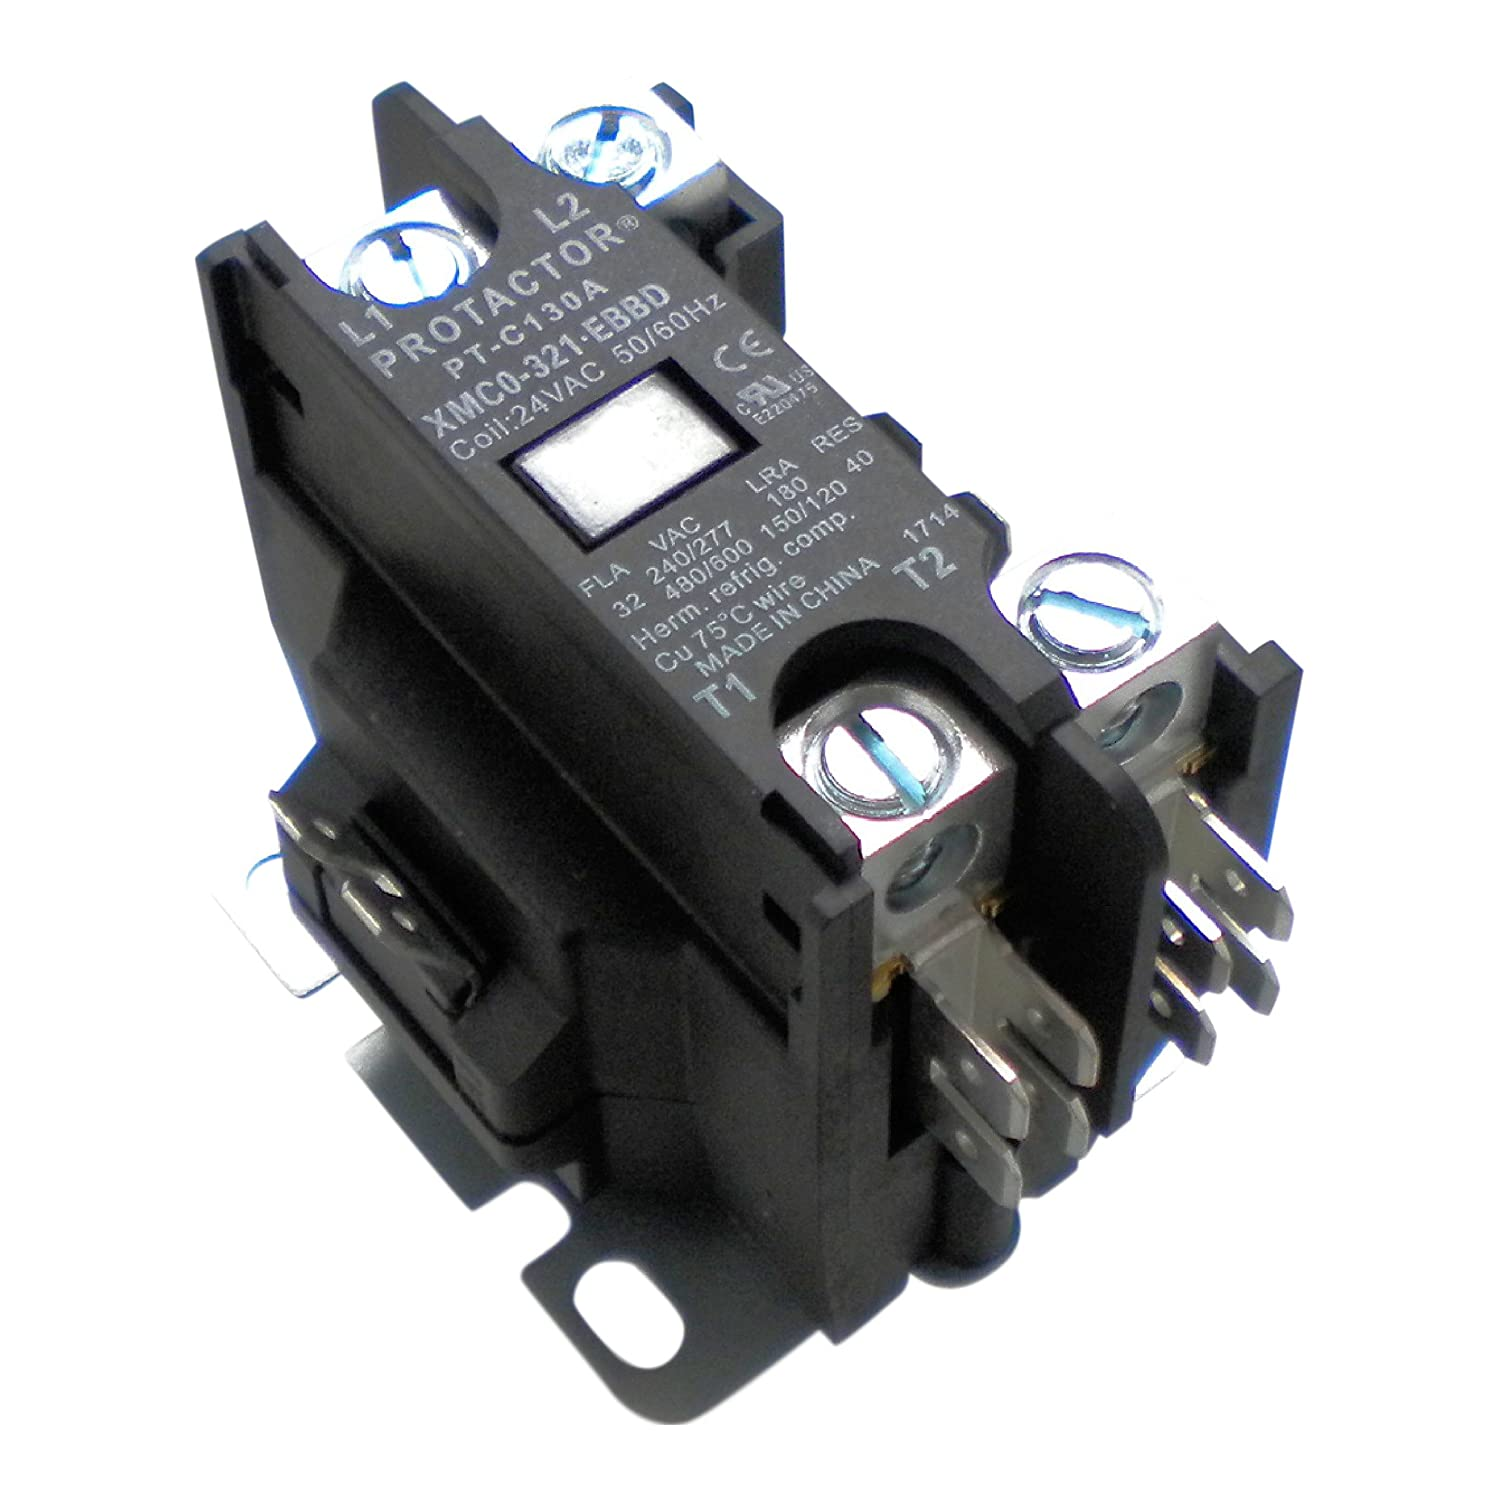 Protactor 1 Pole 32 Amp Heavy Duty Ac Contactor Replaces Virtually Wiring 2pole All Residential Models 30 Amps Or Less